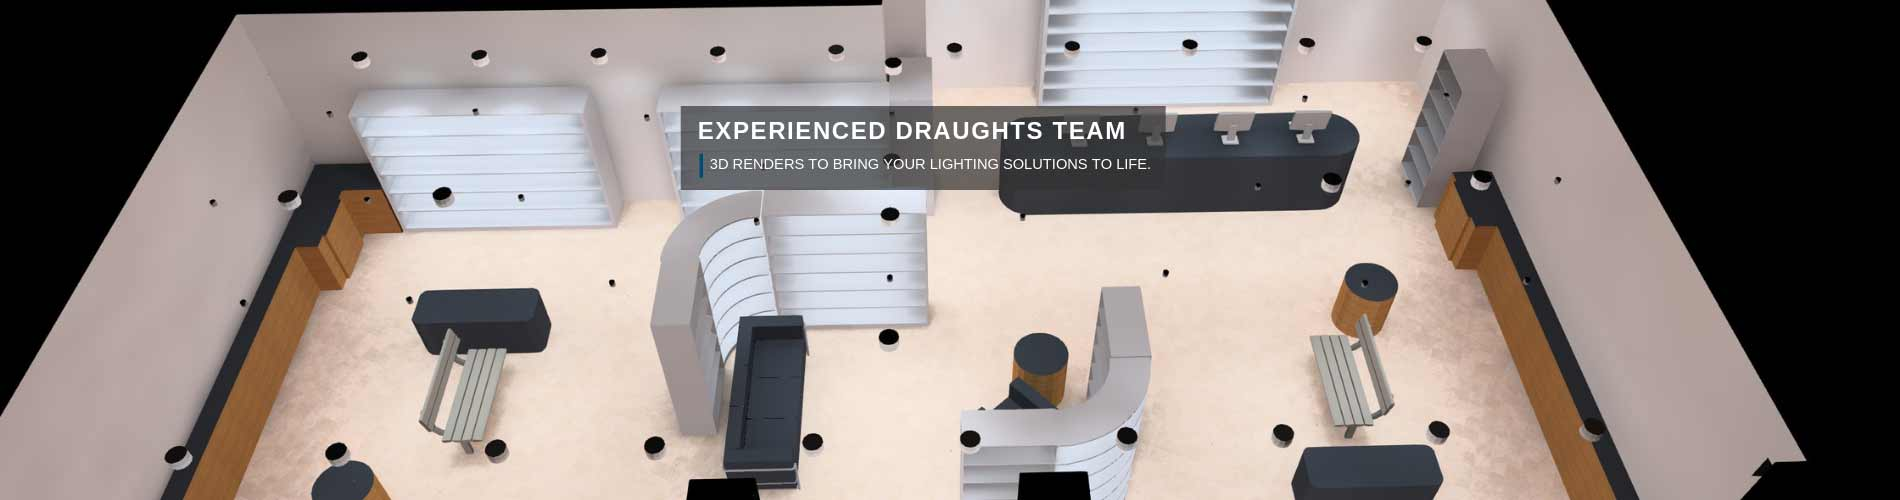 Draughts-Team-Slider